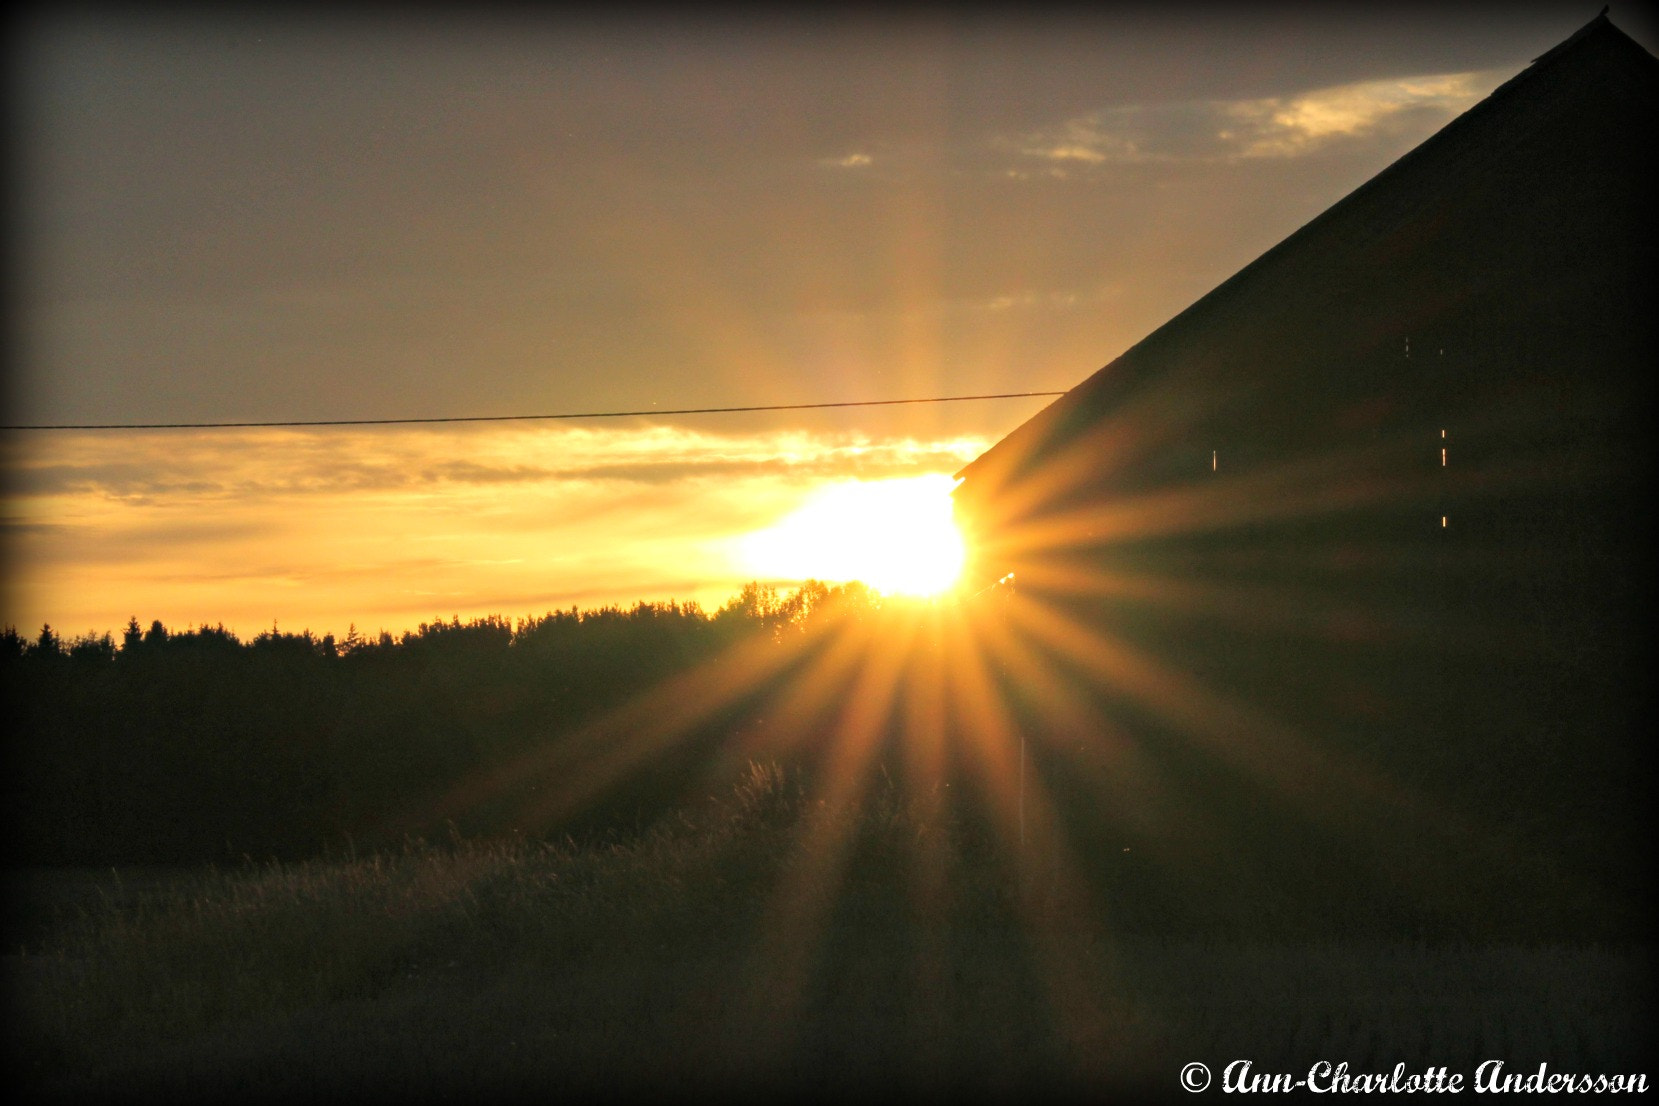 Photograph Sunset, Midsummer 2012 by Ann-Charlotte Andersson on 500px